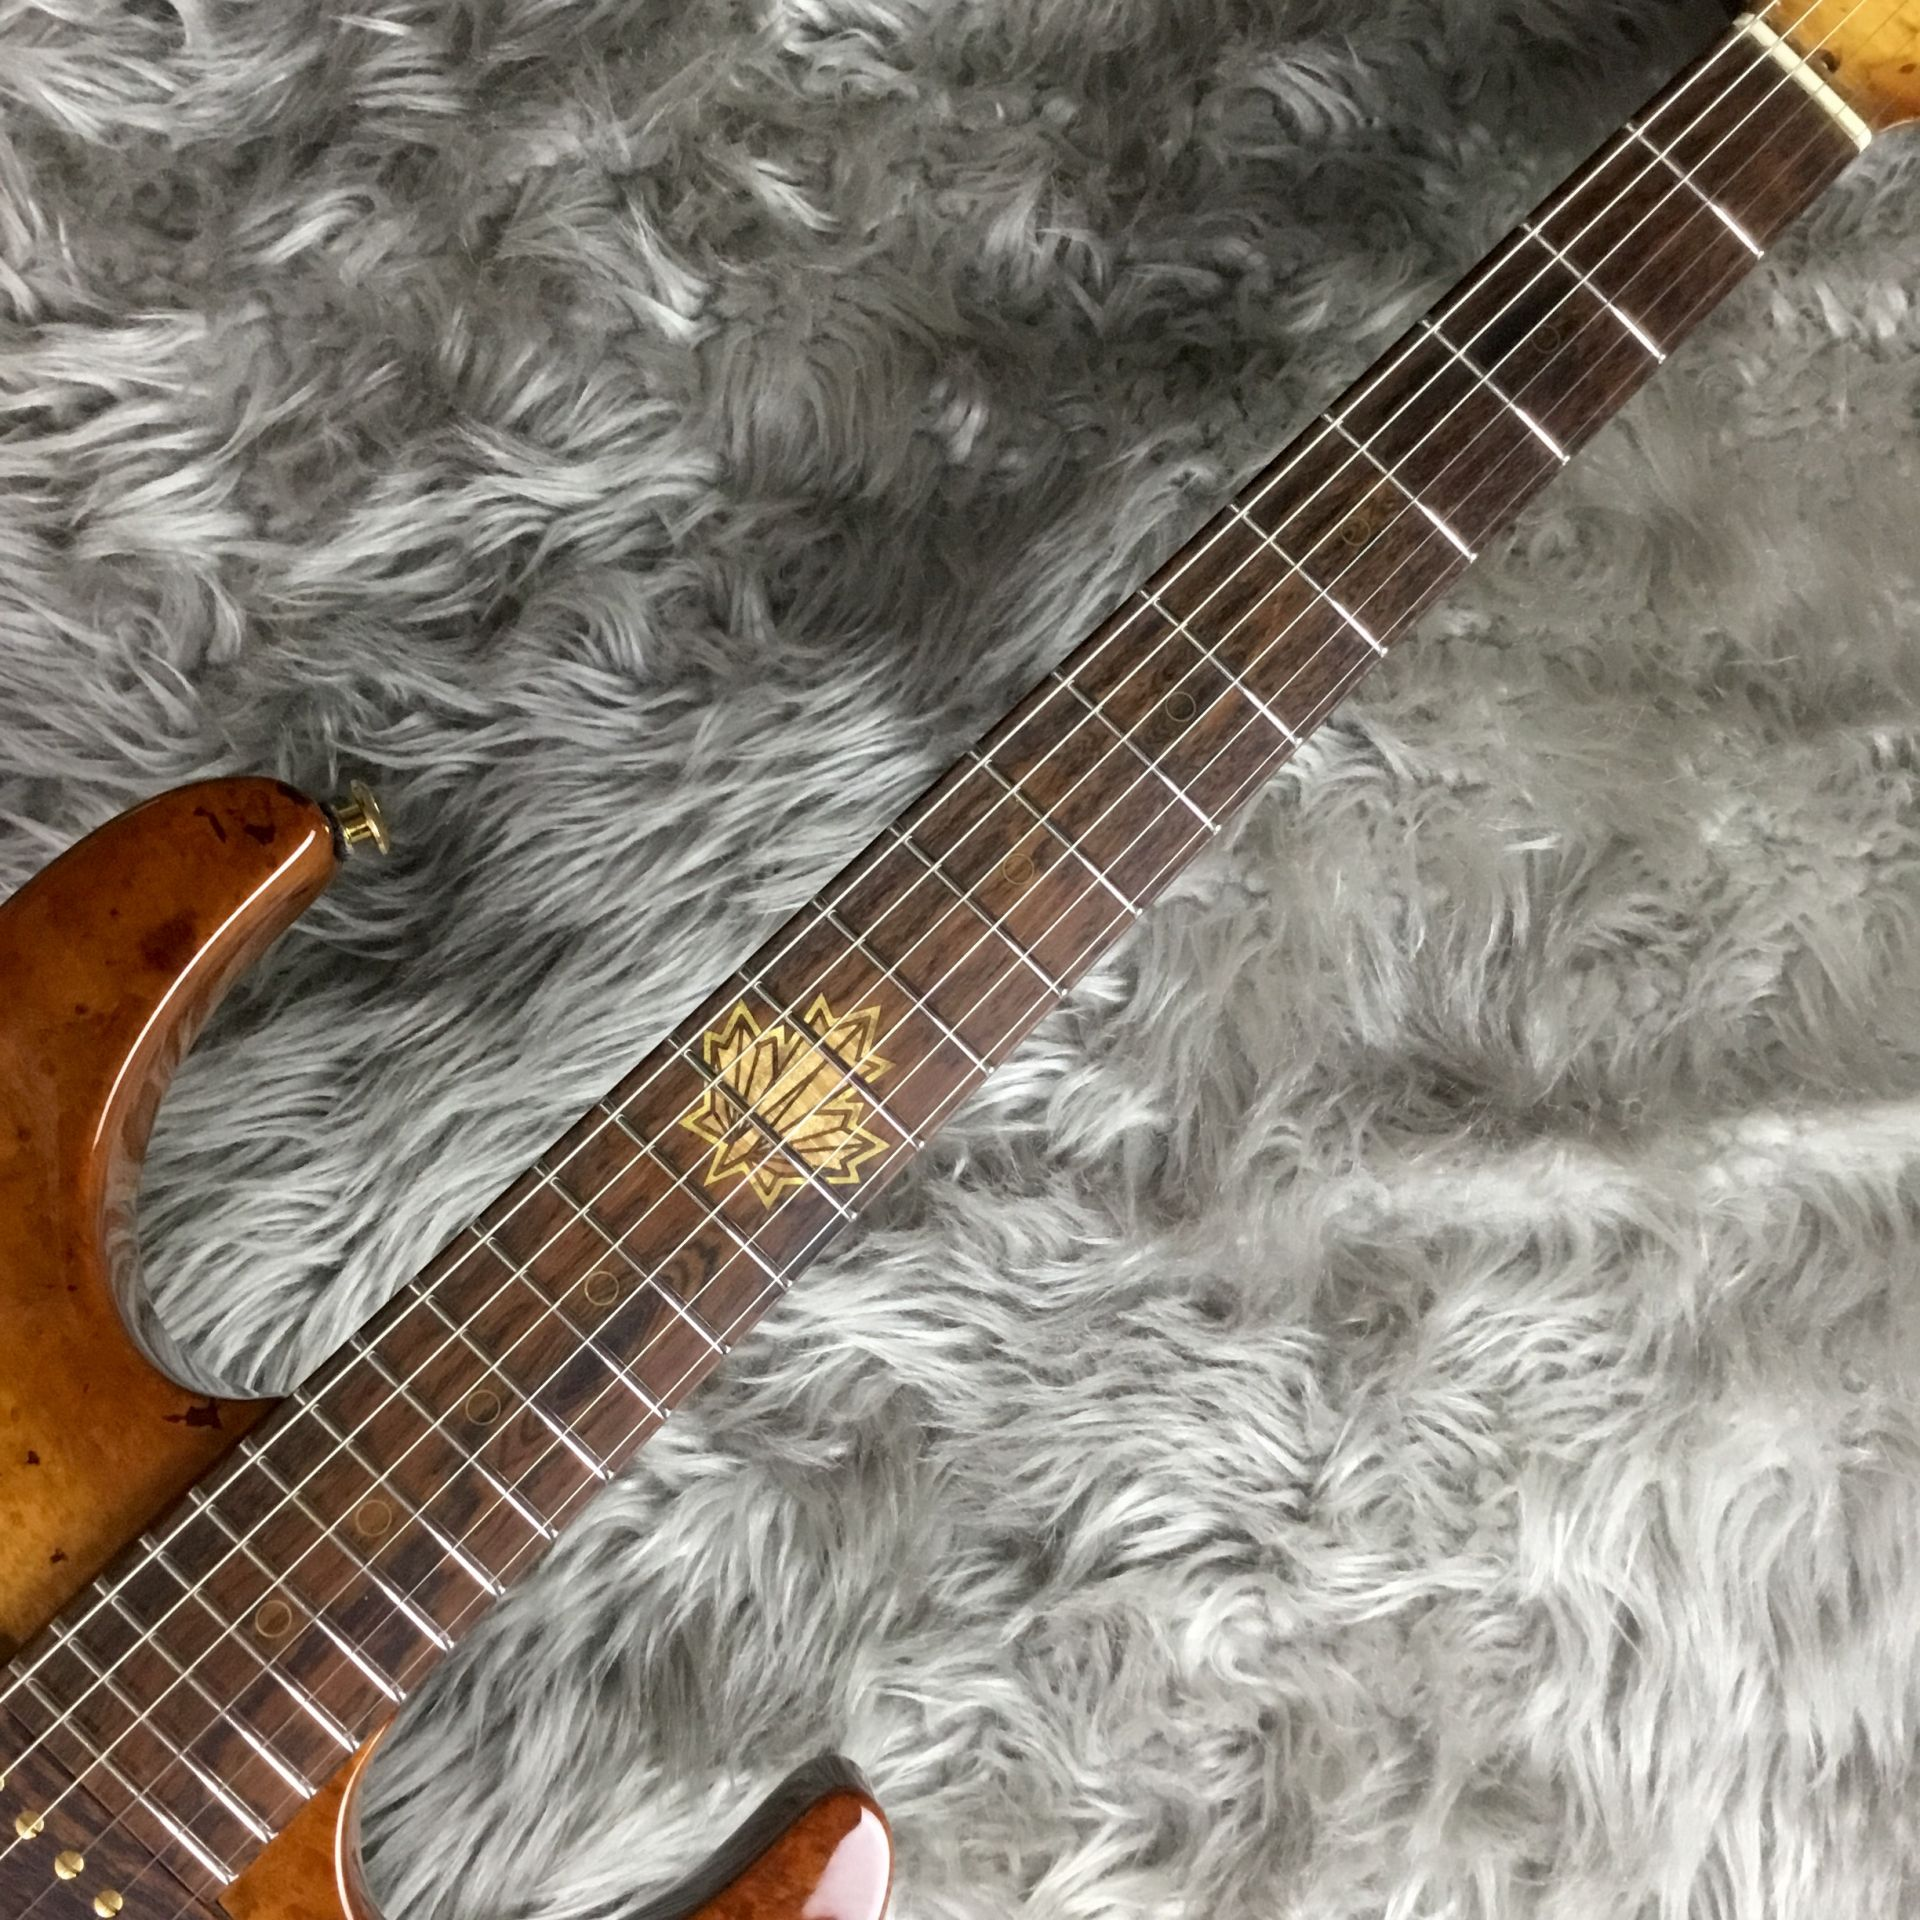 The 2015 Collection Burl Maple Modern Carve Topのボディバック-アップ画像